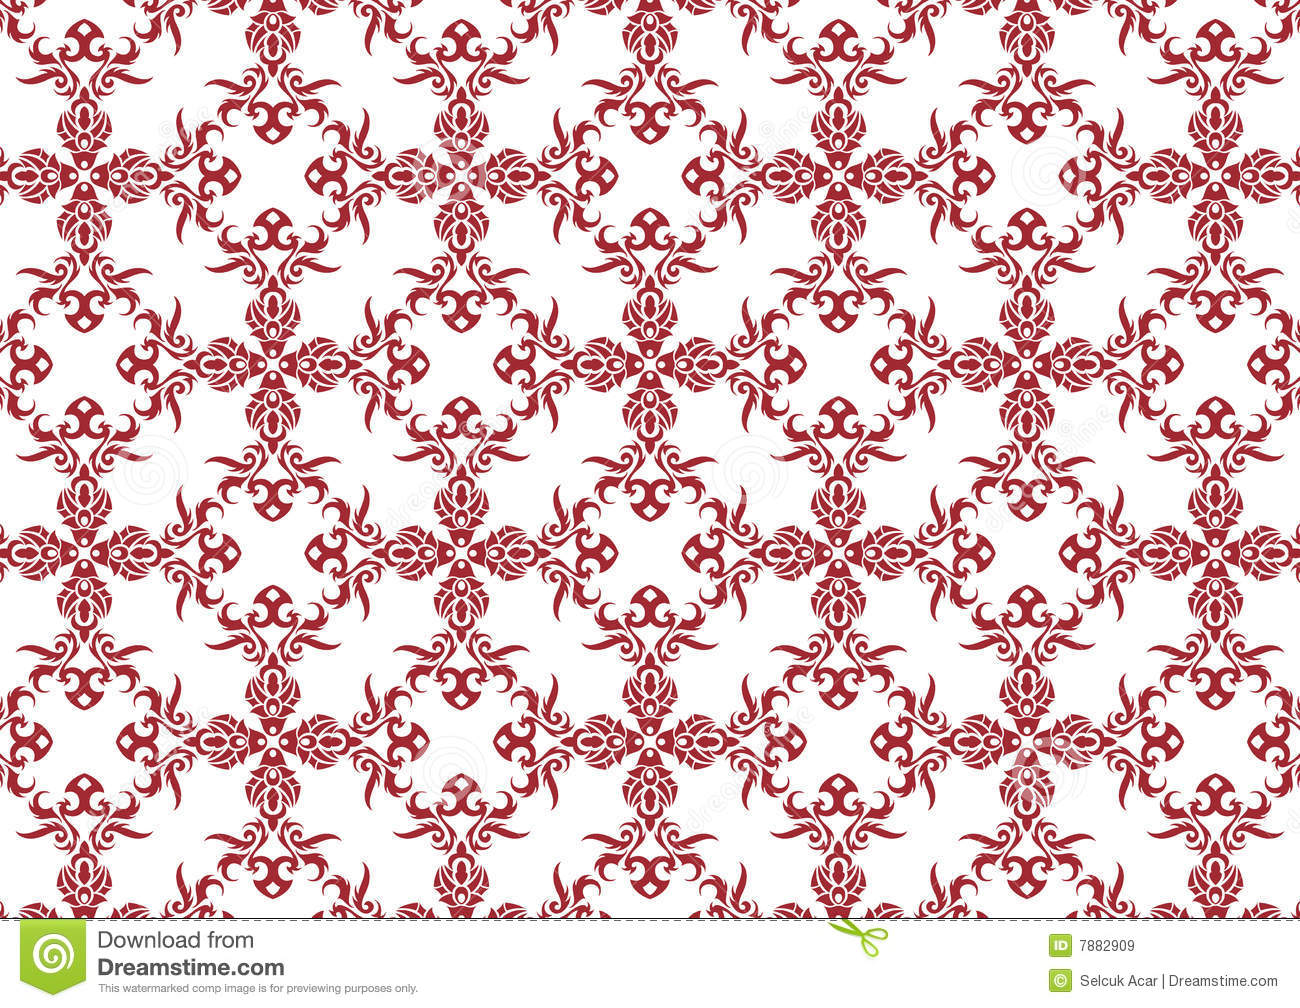 royalty free stock photo - Decorative Wallpaper